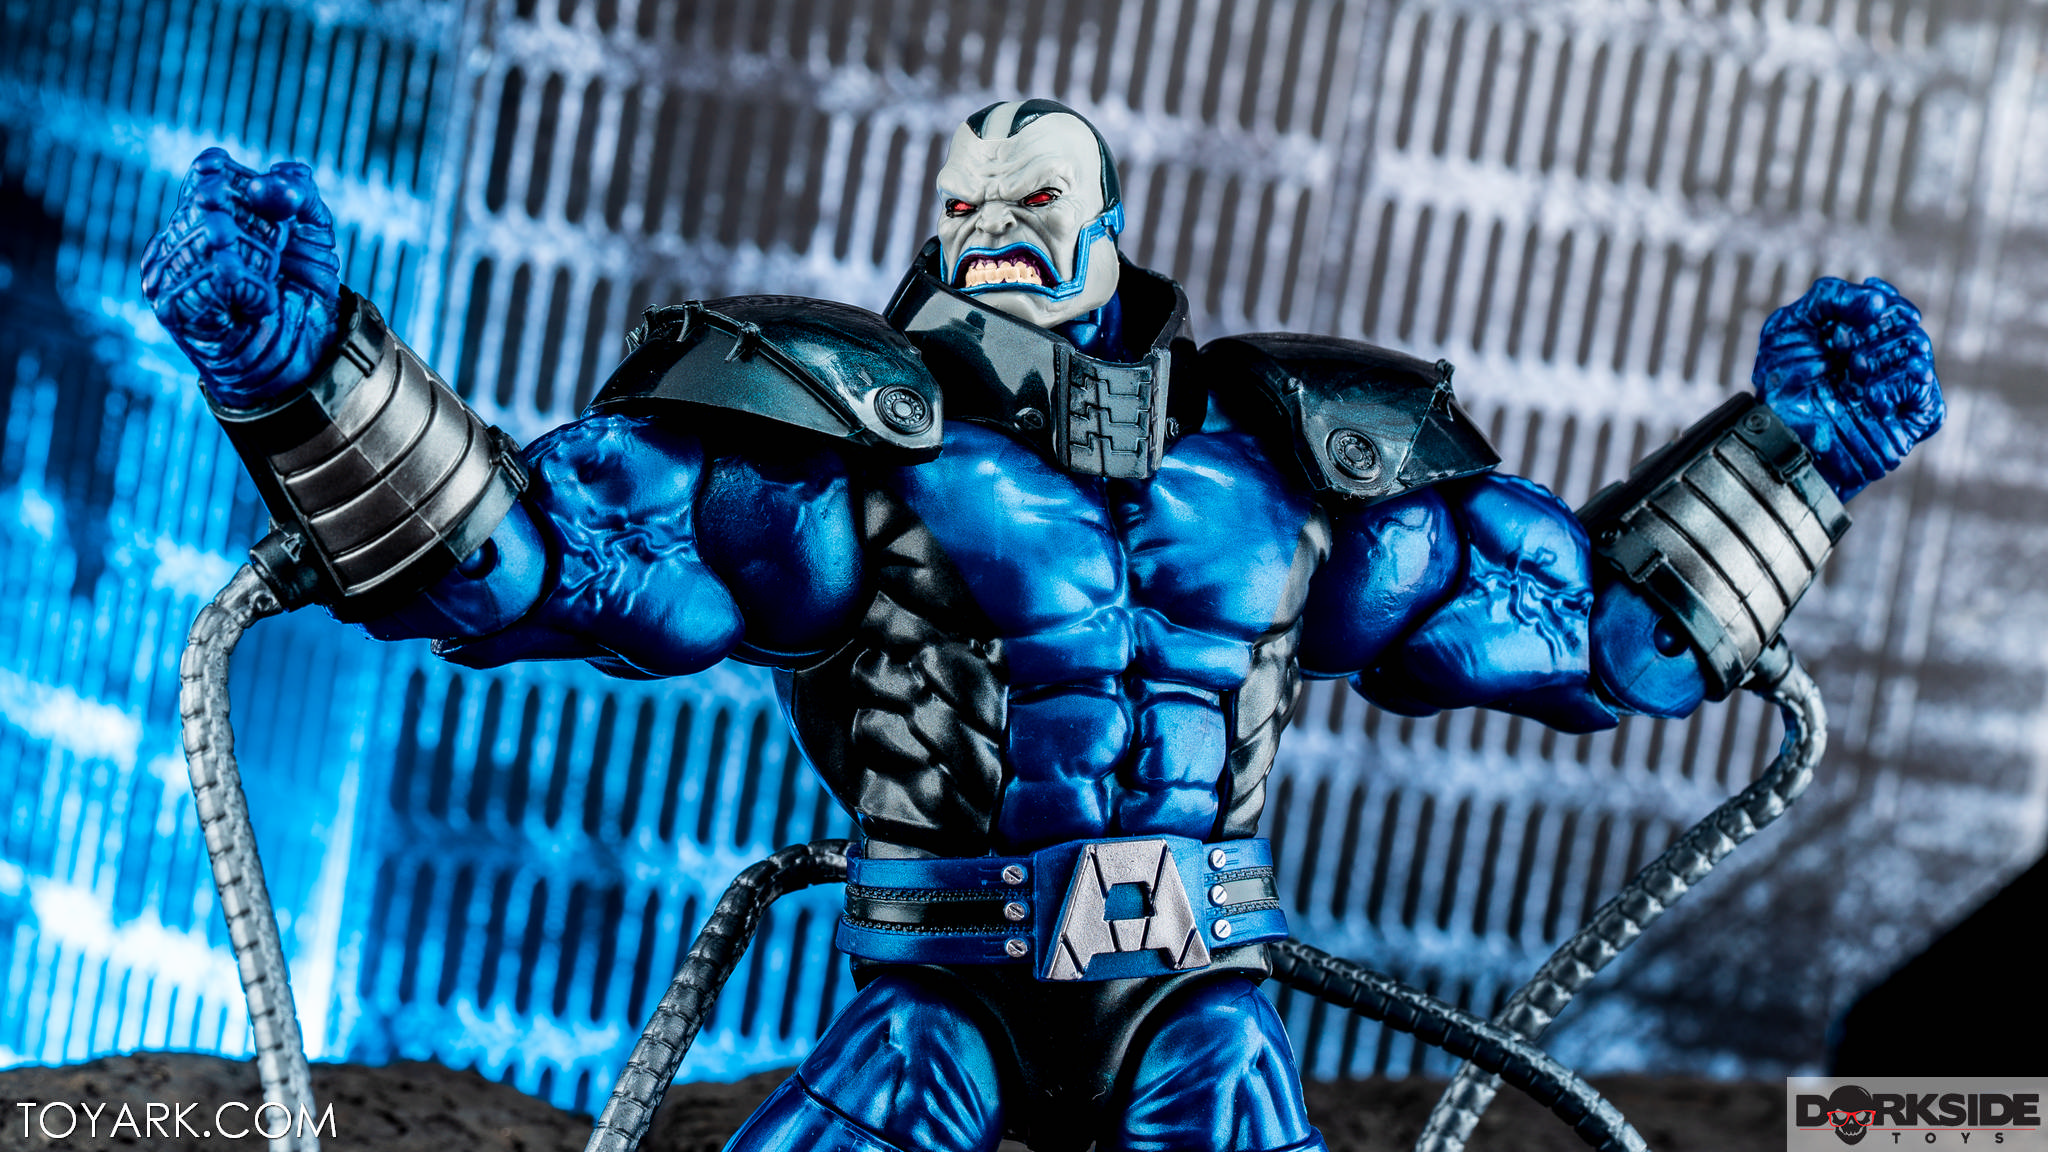 Marvel Legends Apocalypse and Wolverine Photo Shoot - The